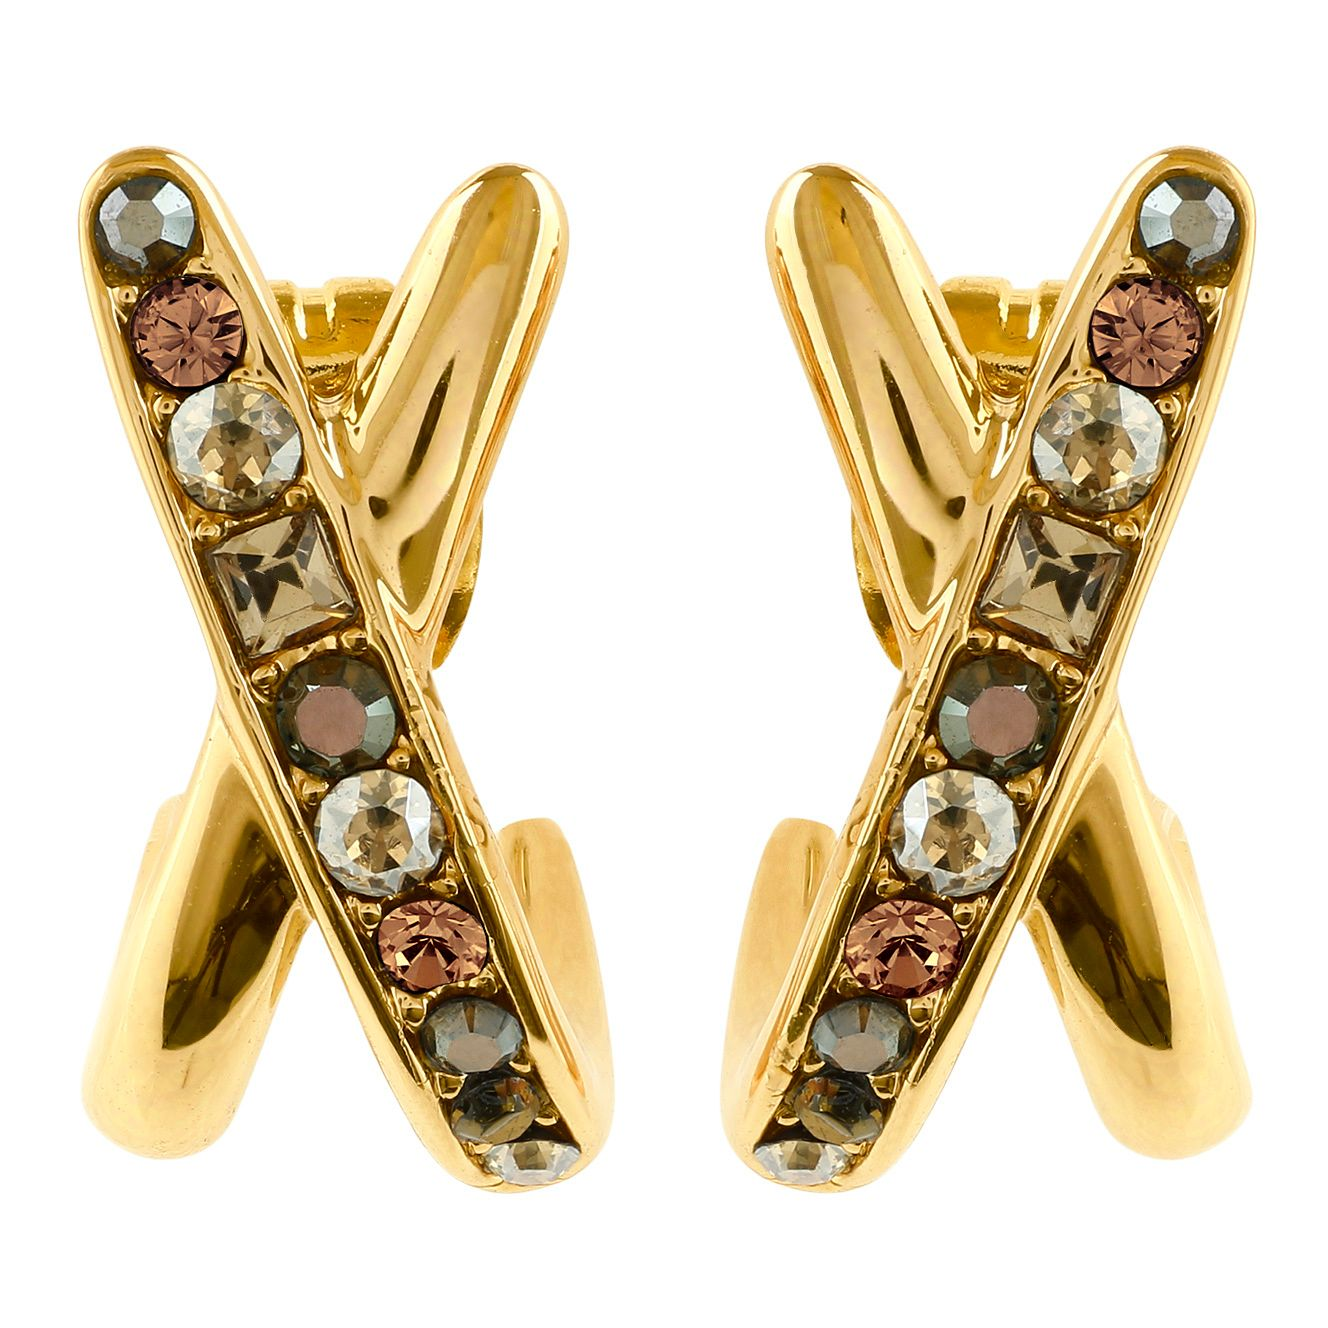 Adore Ladies Baguette Gold Plated Crossing Earrings - Product number 1075047